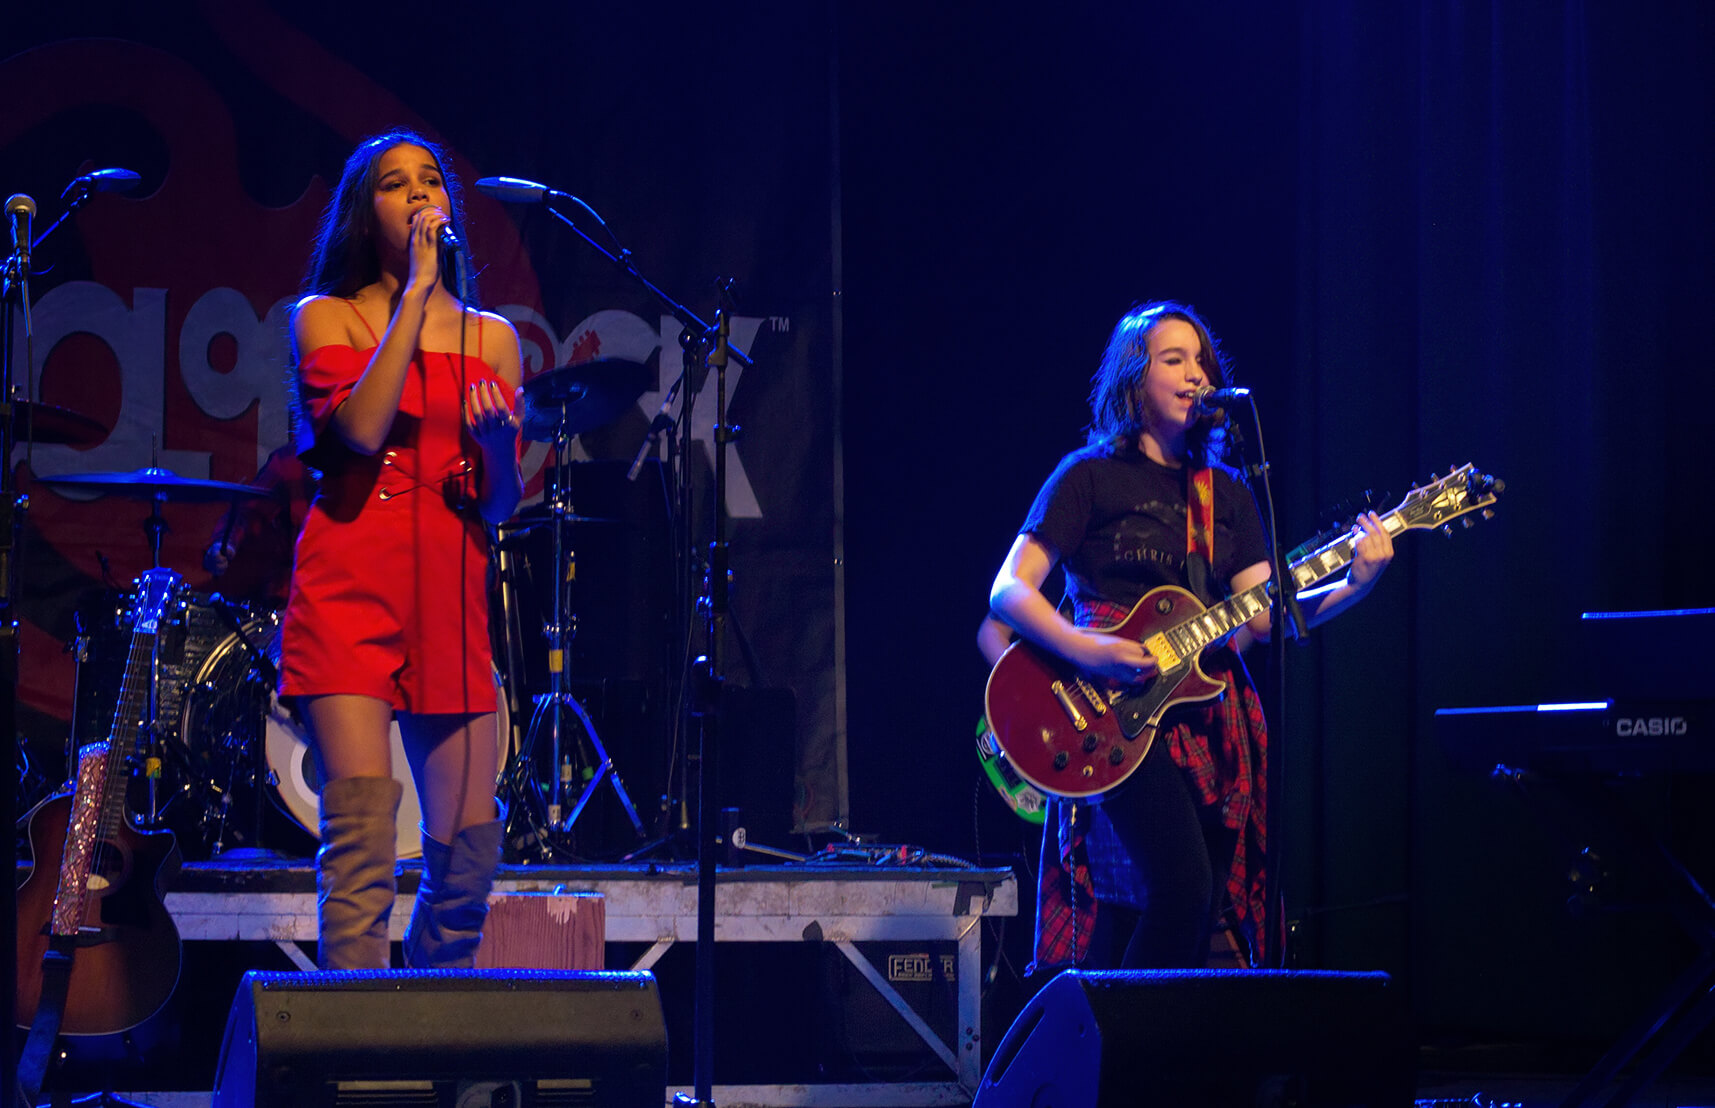 Lily and Iris harmonize to the greatness of grunge.